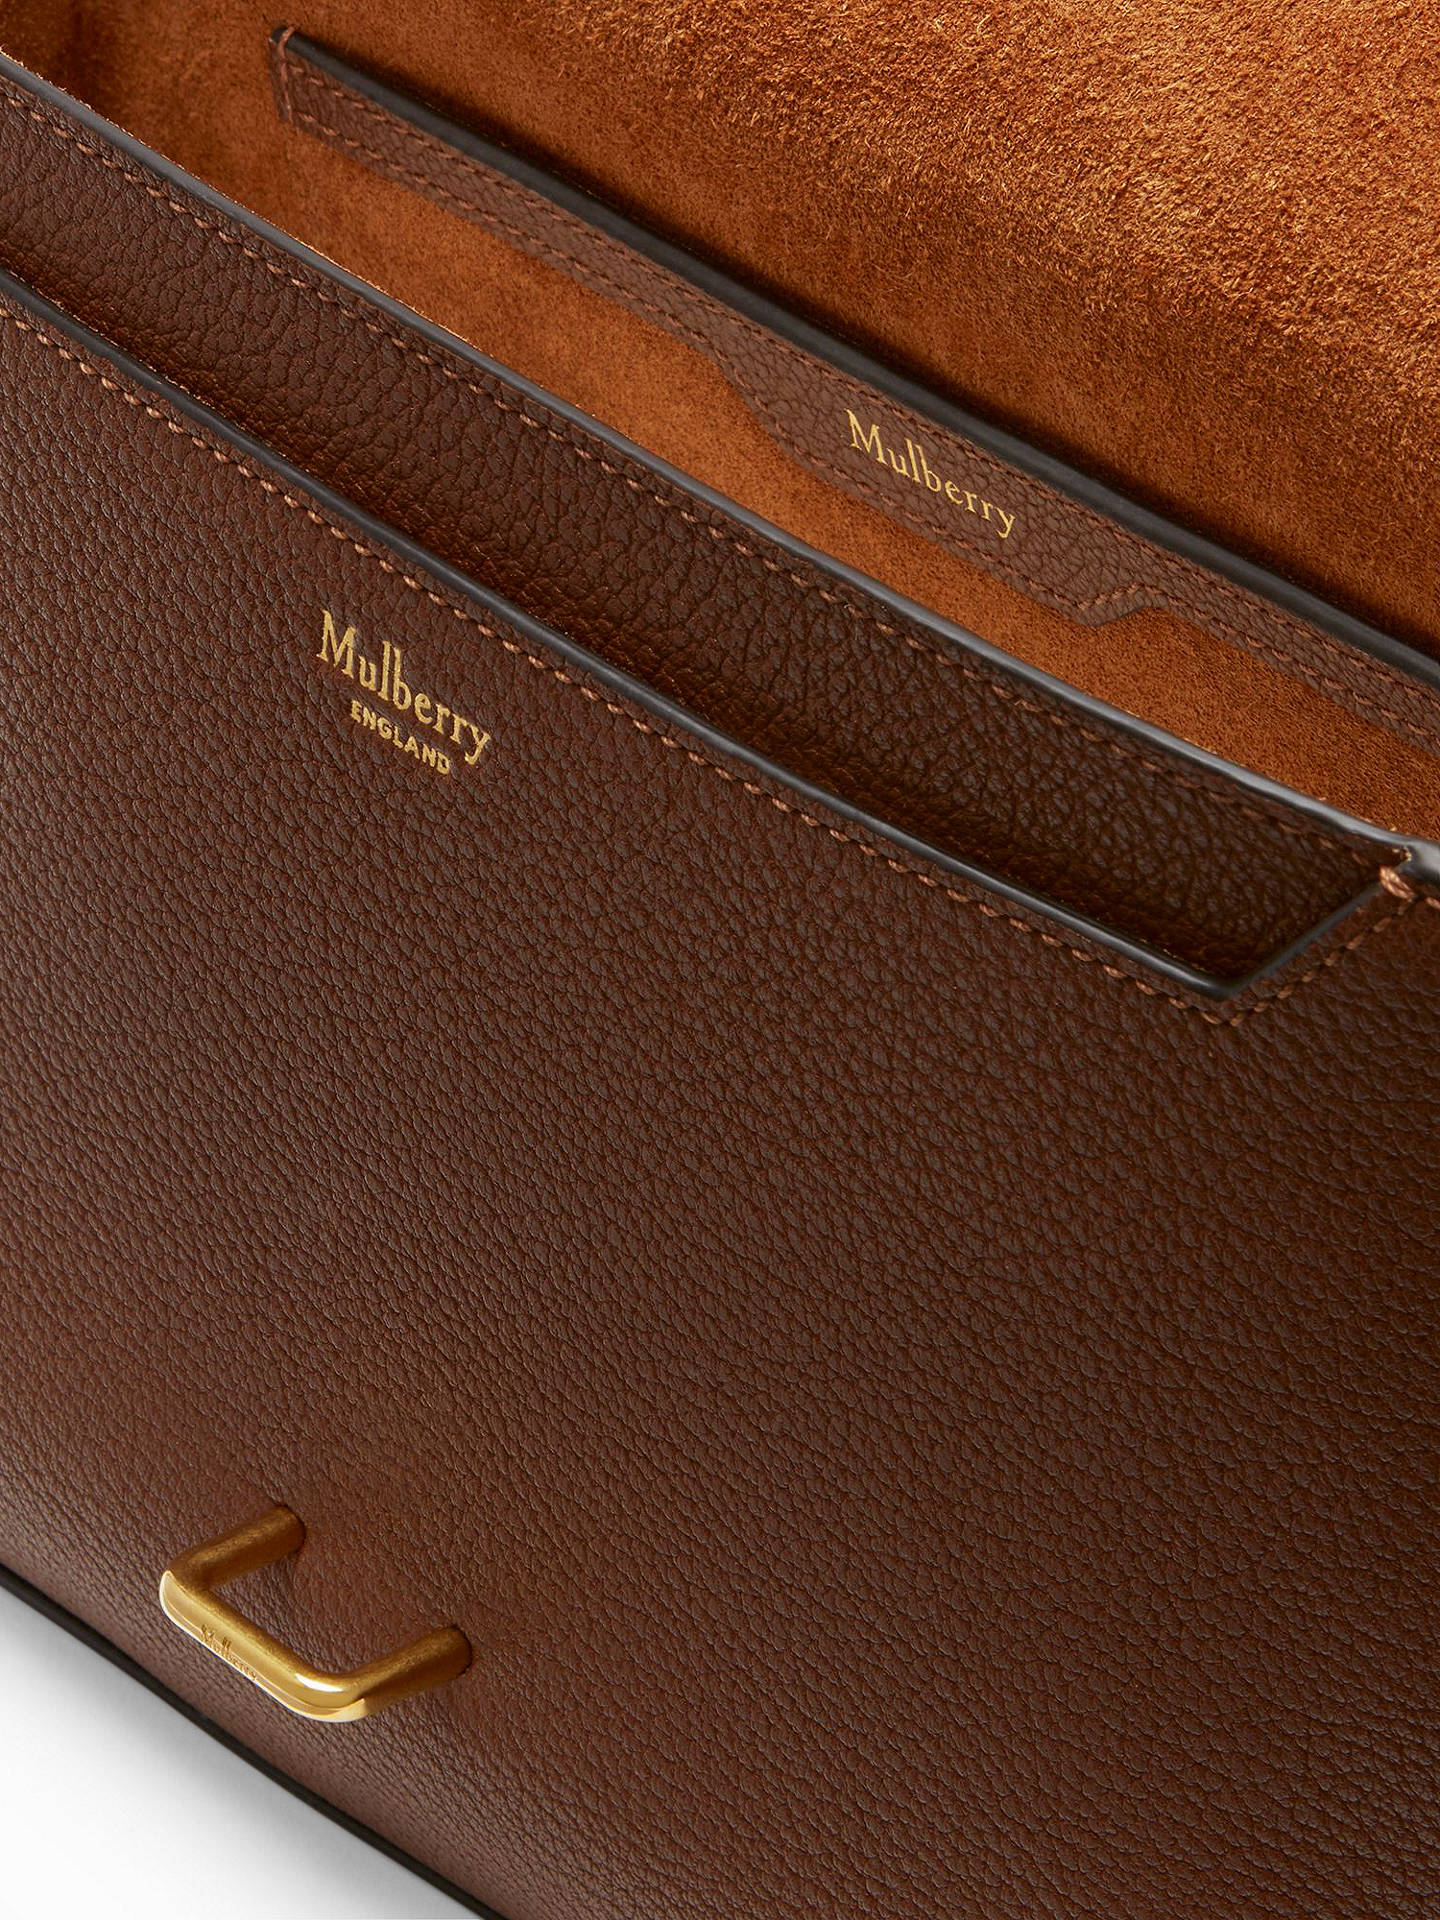 ... BuyMulberry Tenby Goat Textured Leather Satchel Bag, Tan Online at  johnlewis.com 61d5545657